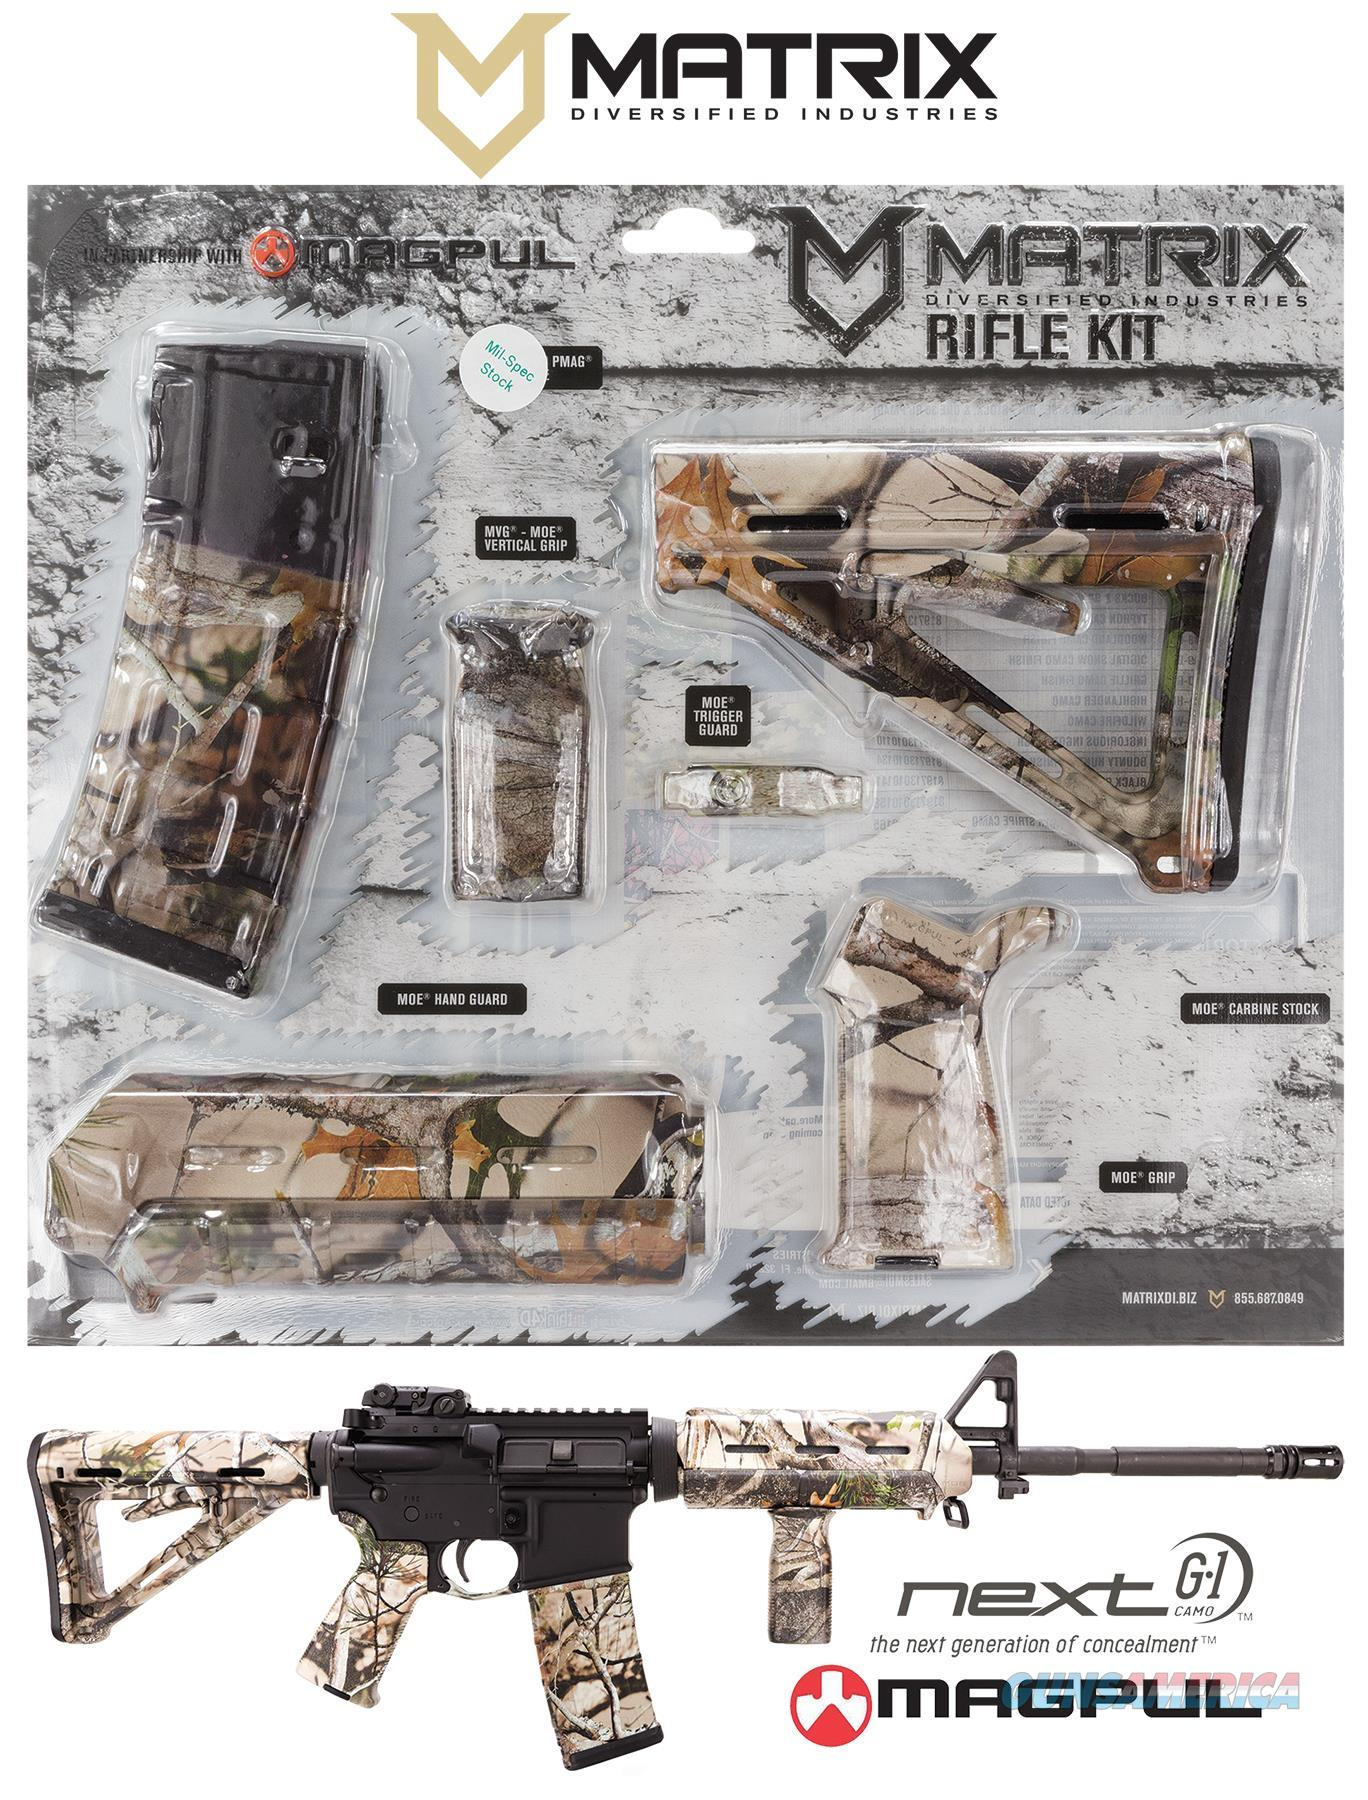 Mdi Magcom -Nv Next Camo Vista Magpul Moe Kit Ar-15 Polymer MAGCOMNV  Non-Guns > Gunstocks, Grips & Wood